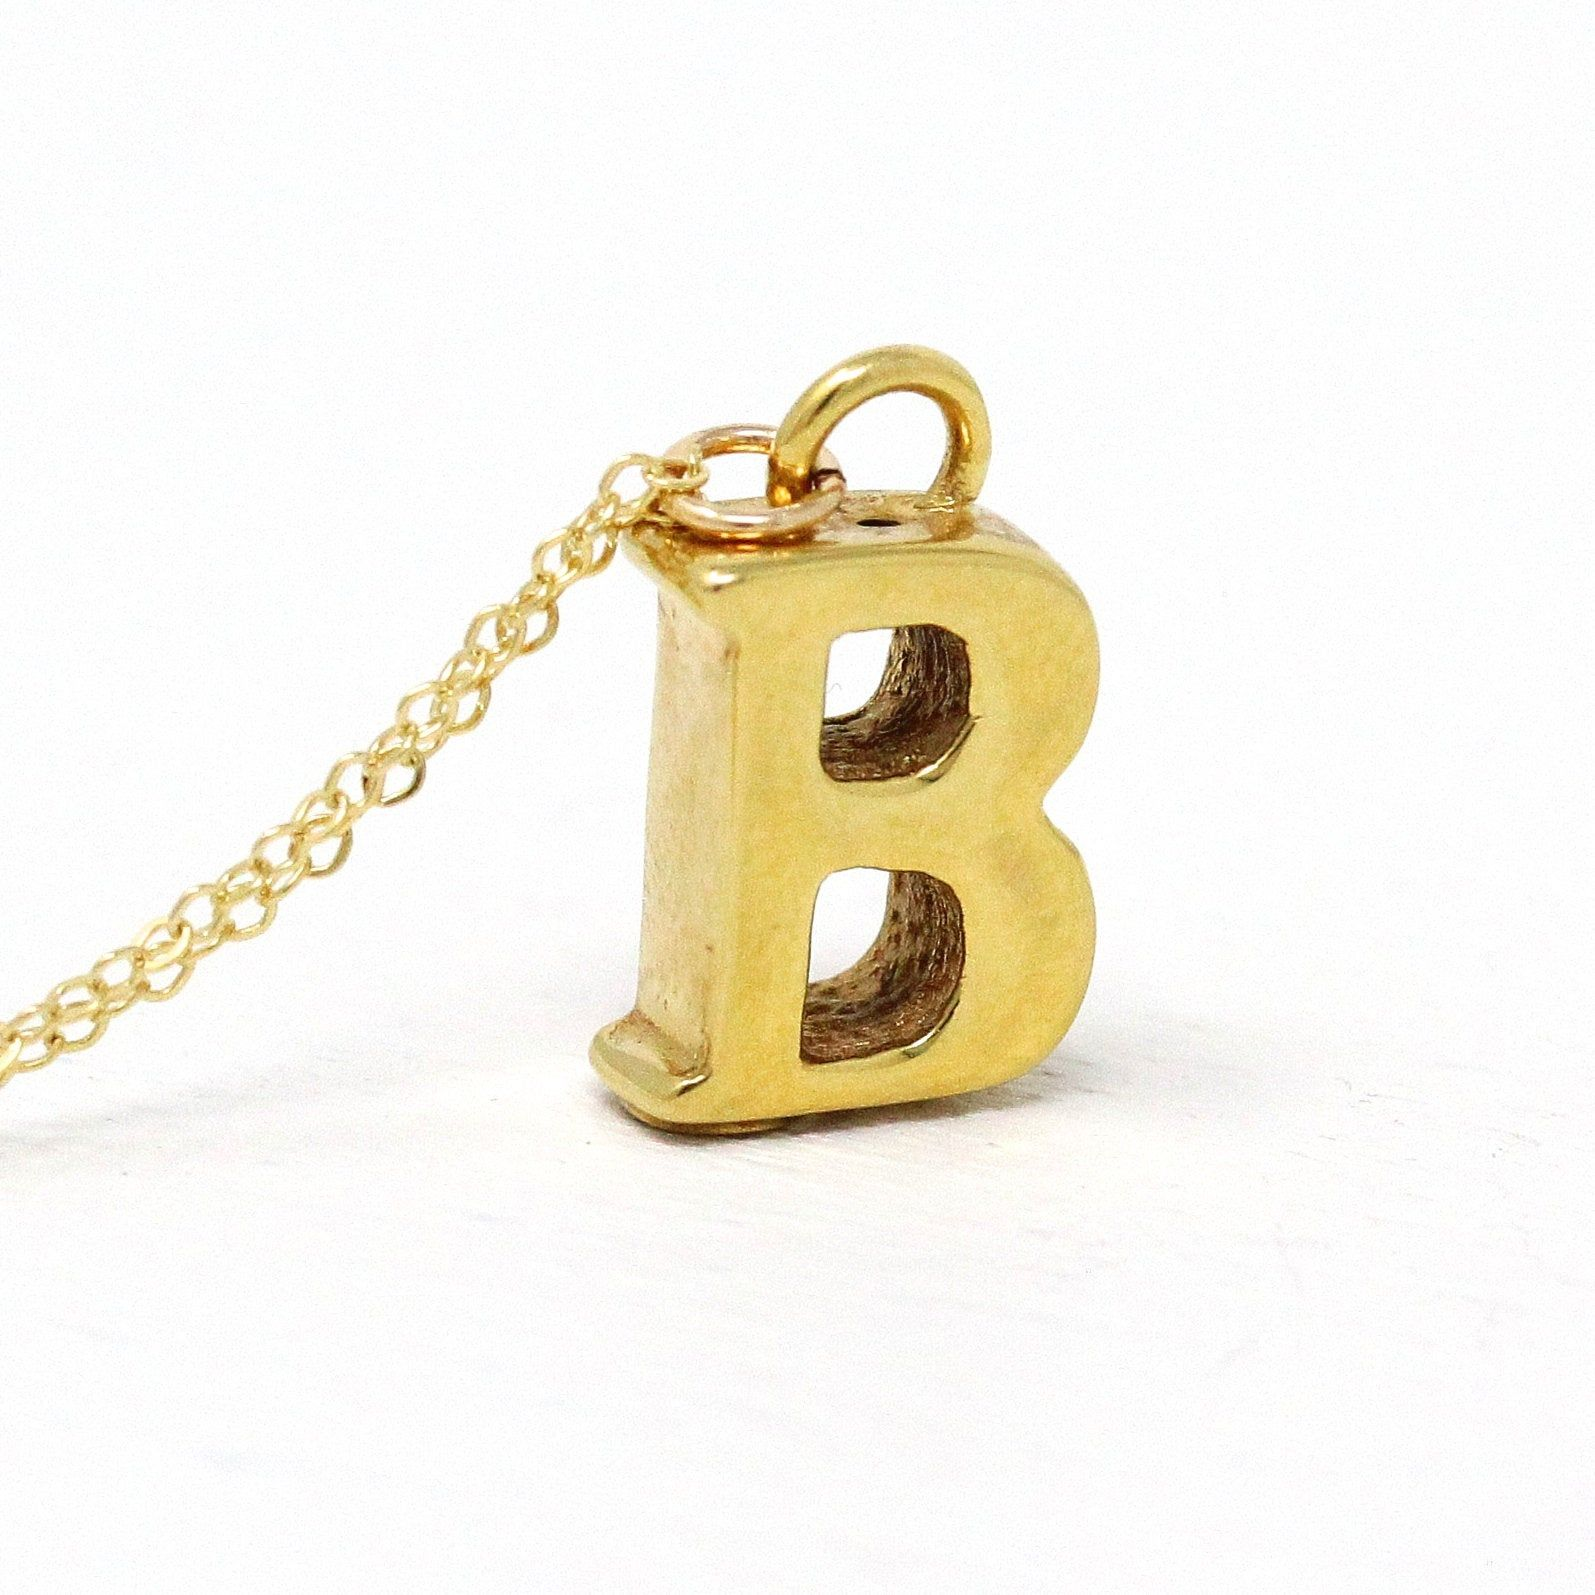 Letter A Fob Charms 4 pcs 14K Gold Plated